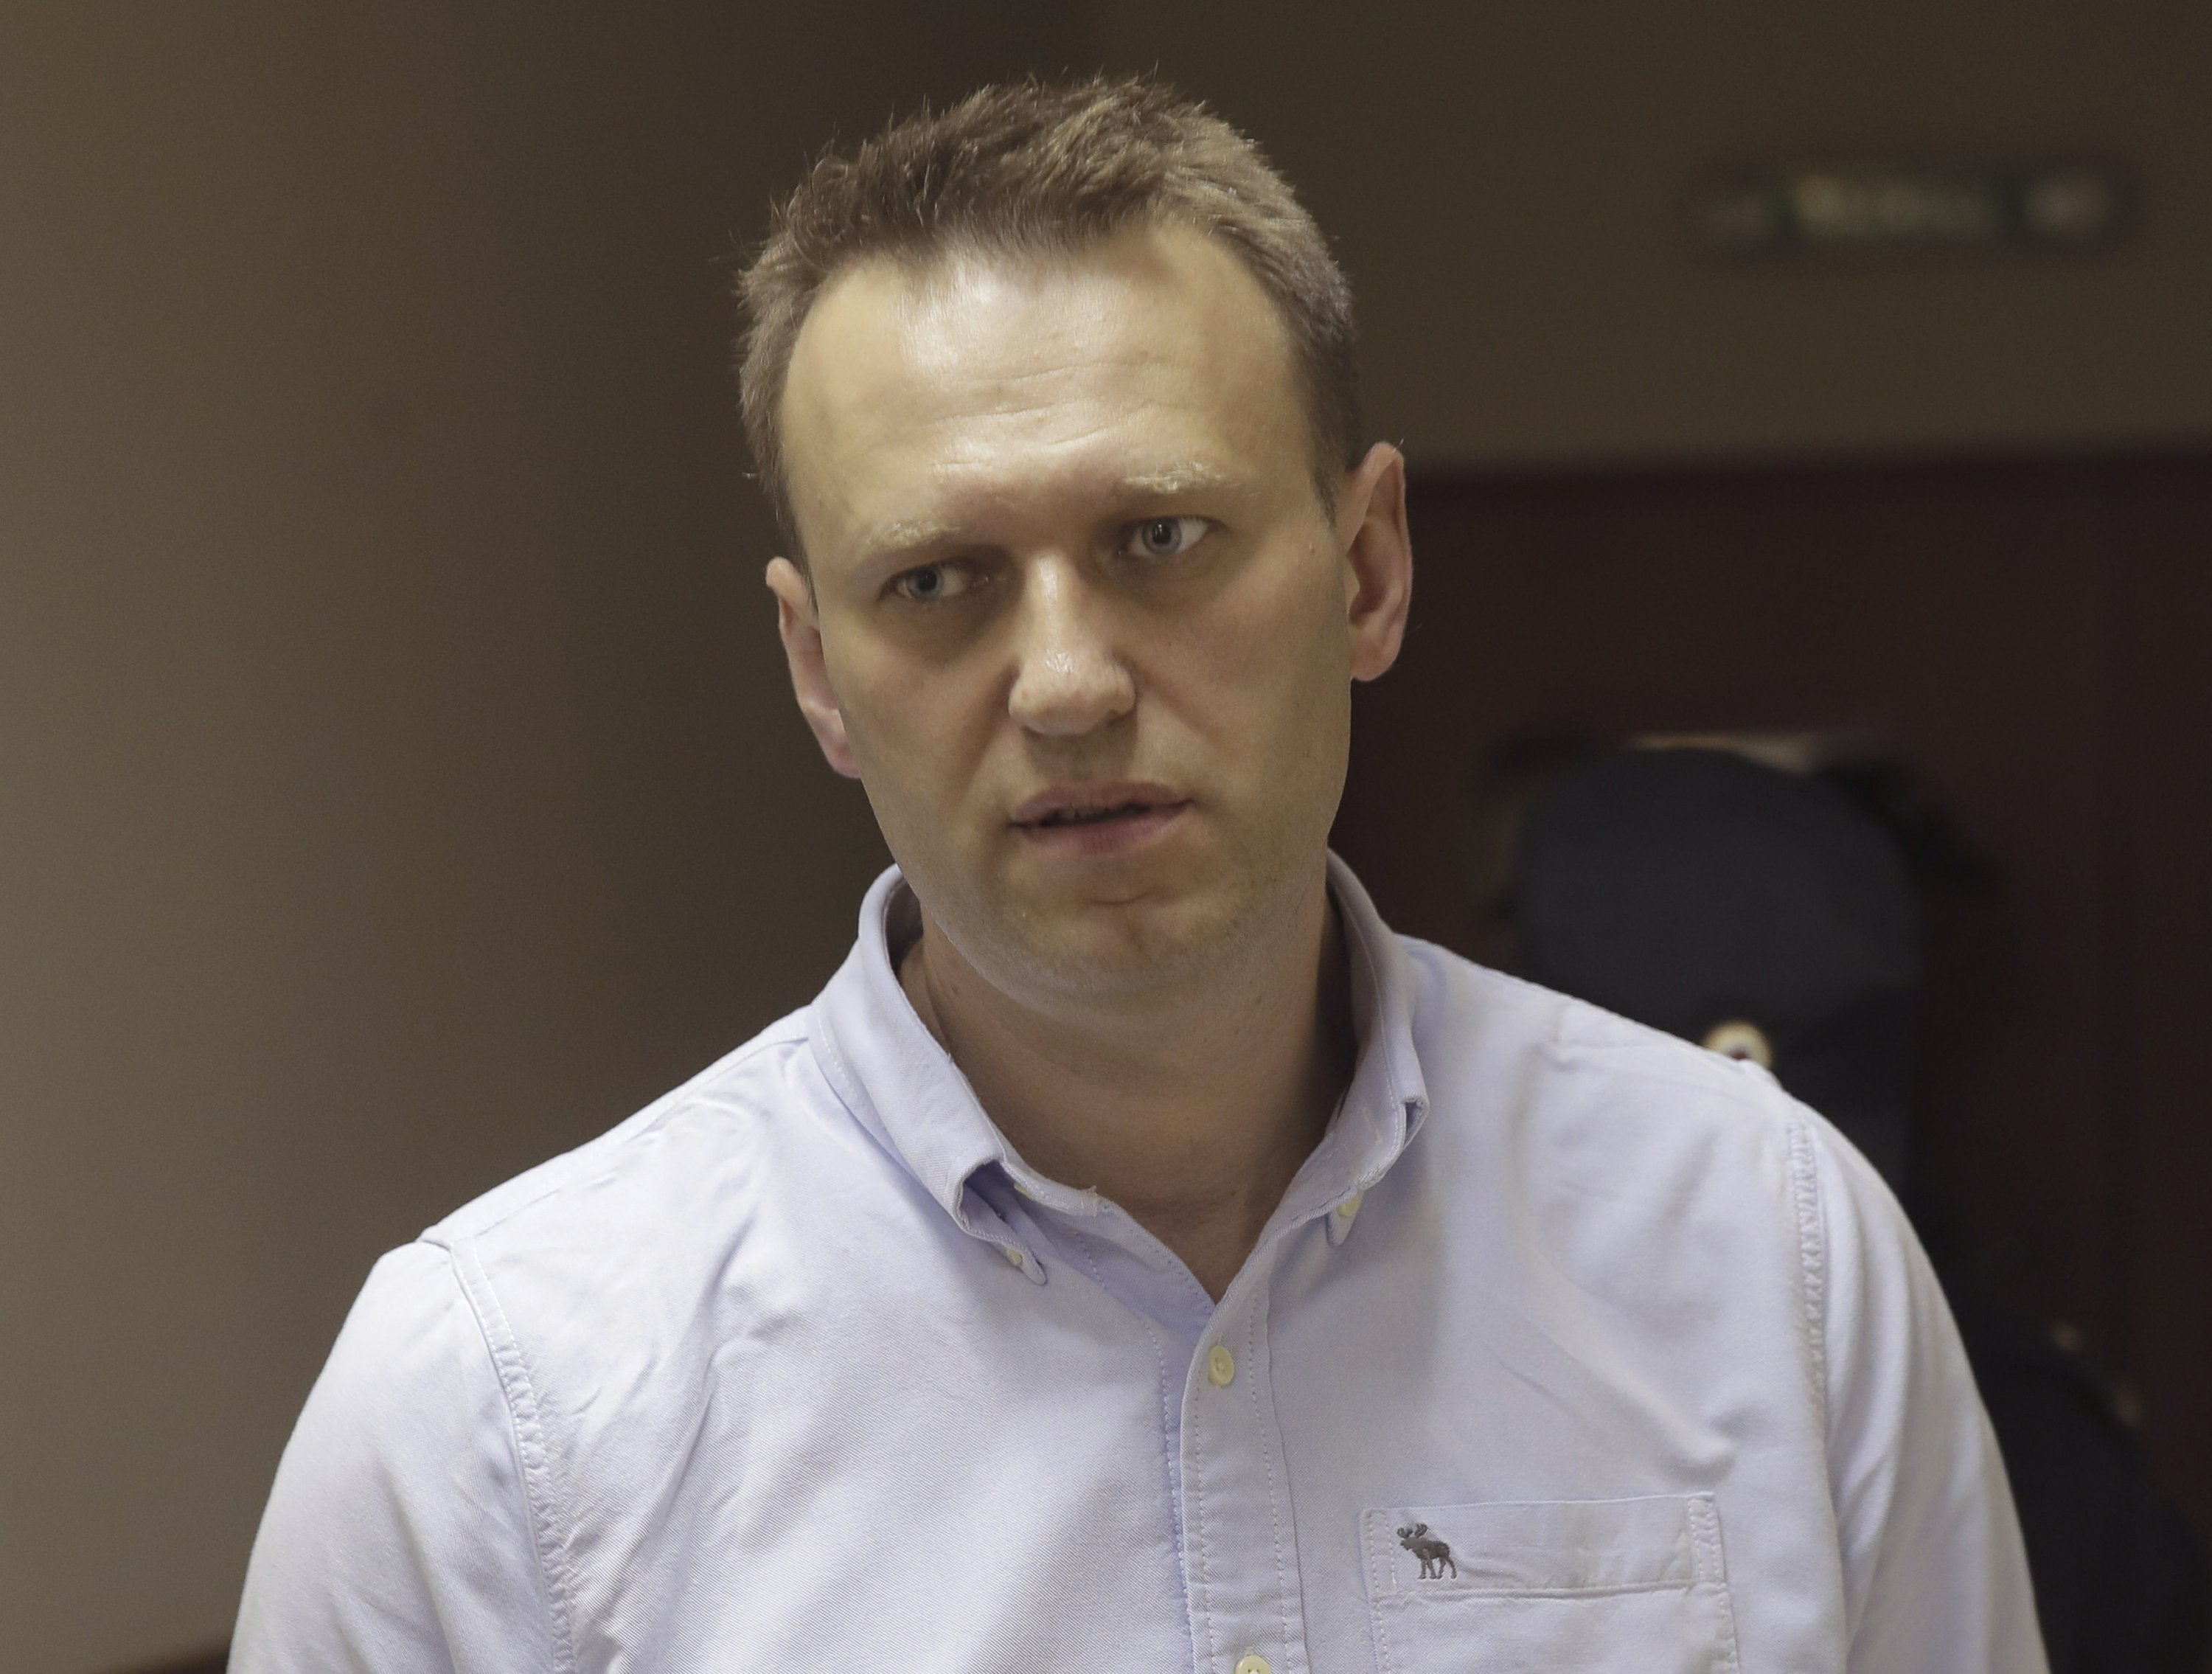 The Latest: Moscow court jails opposition leader for 30 days